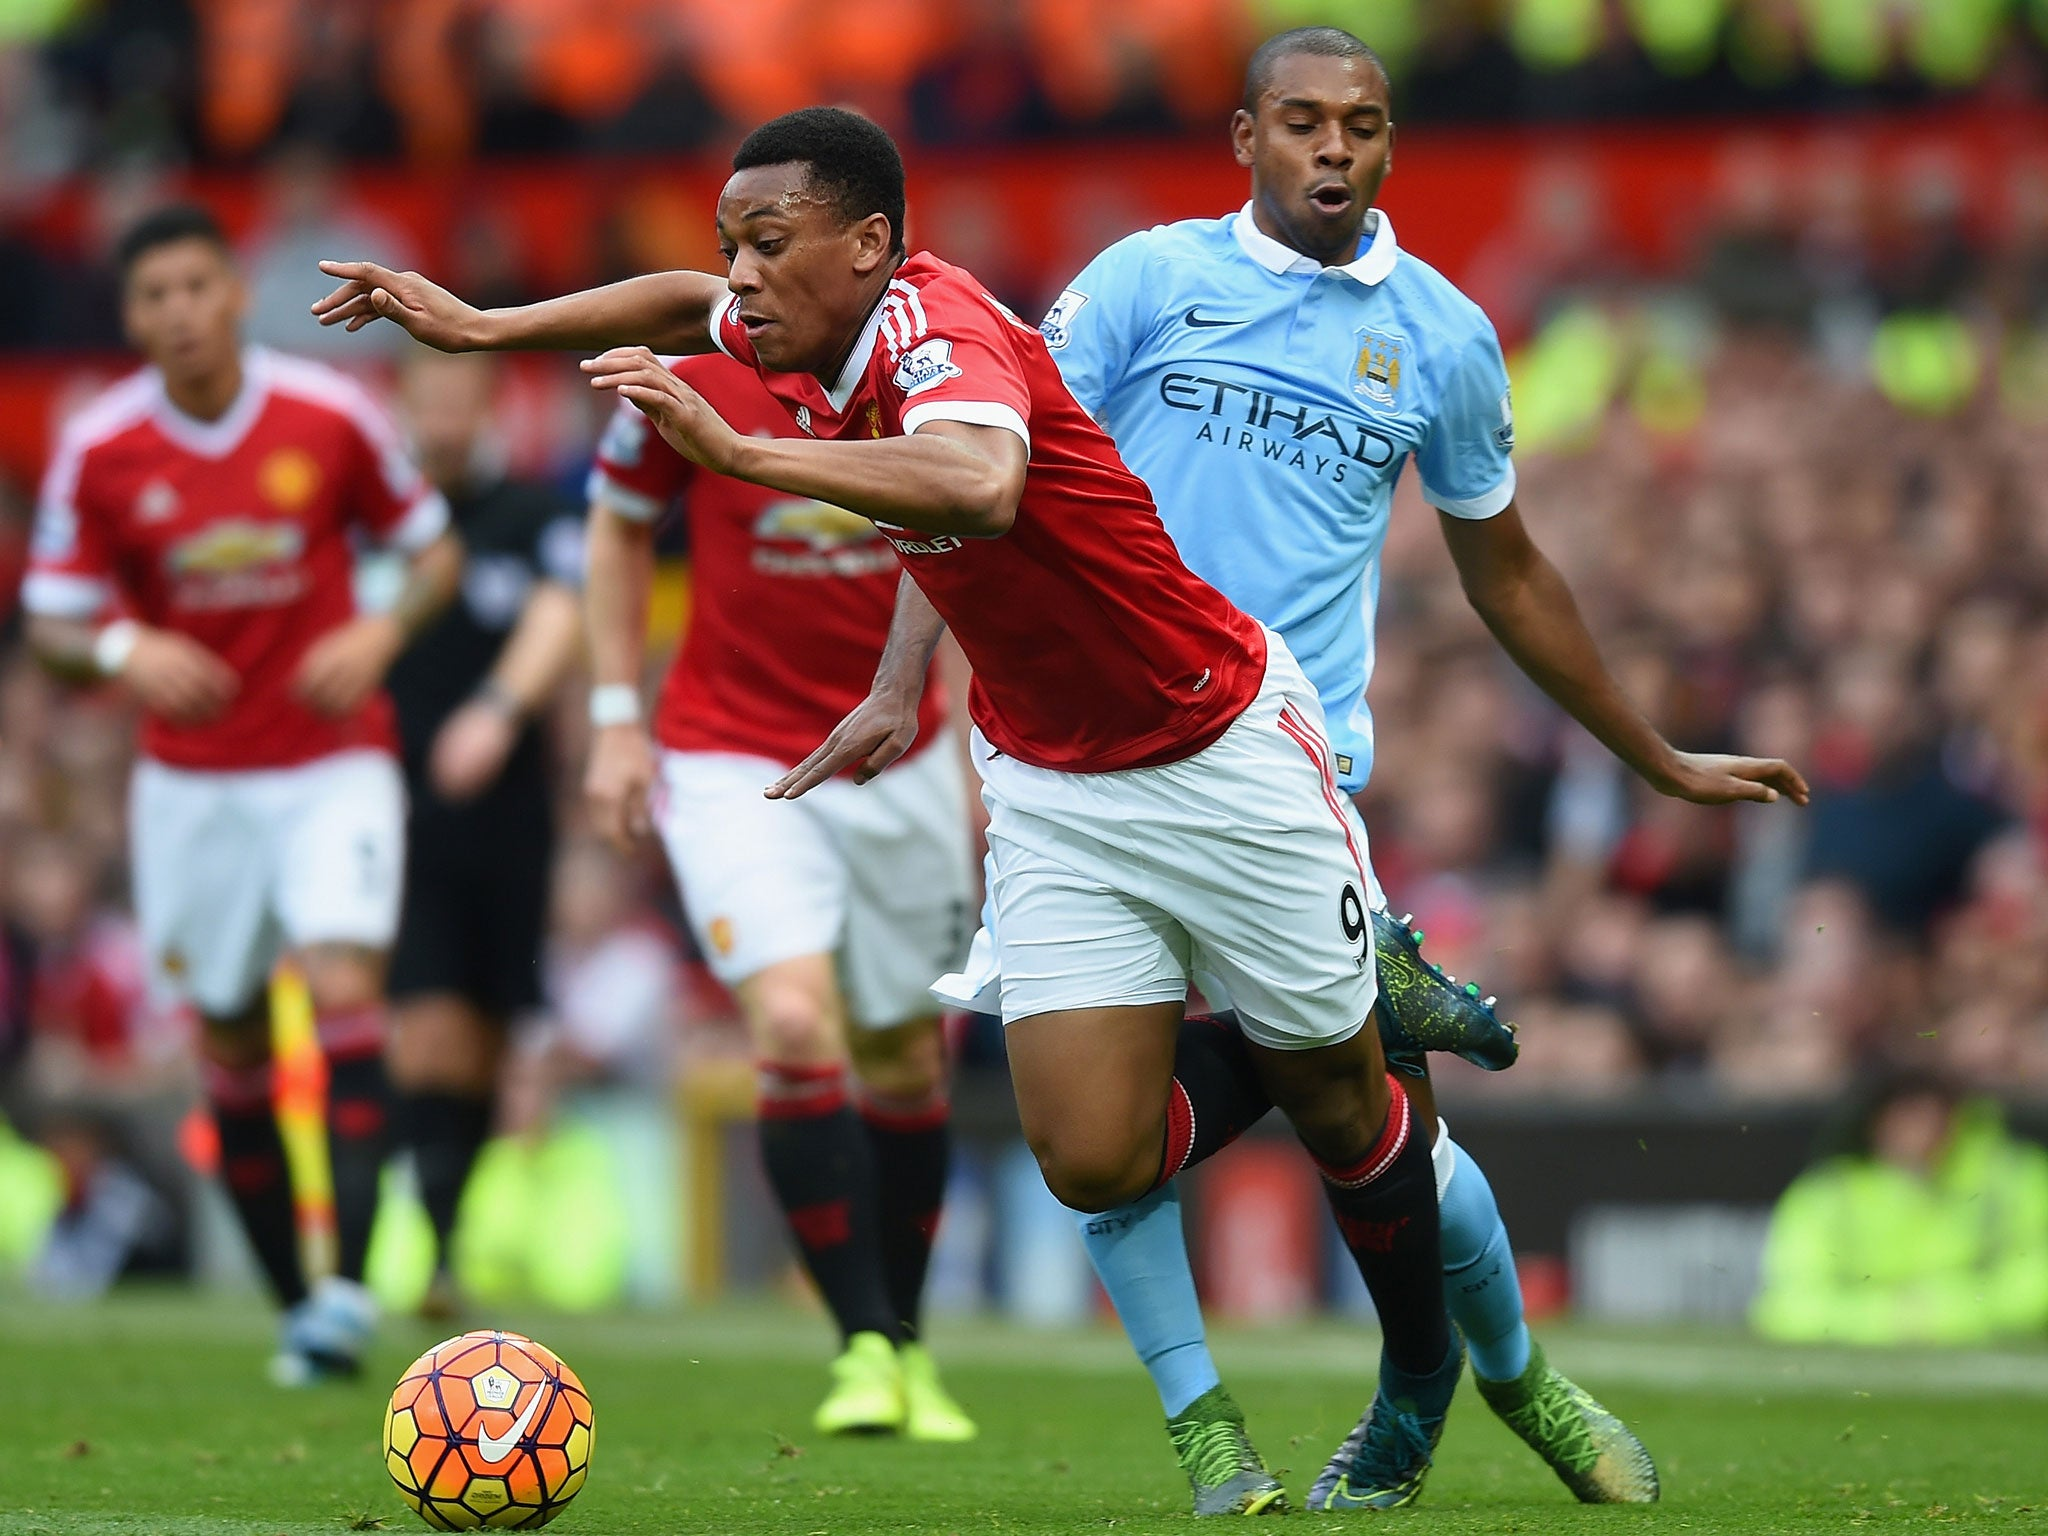 Manchester United 0 Manchester City 0: Five things we learnt, including Anthony Martial is wasted on the wing